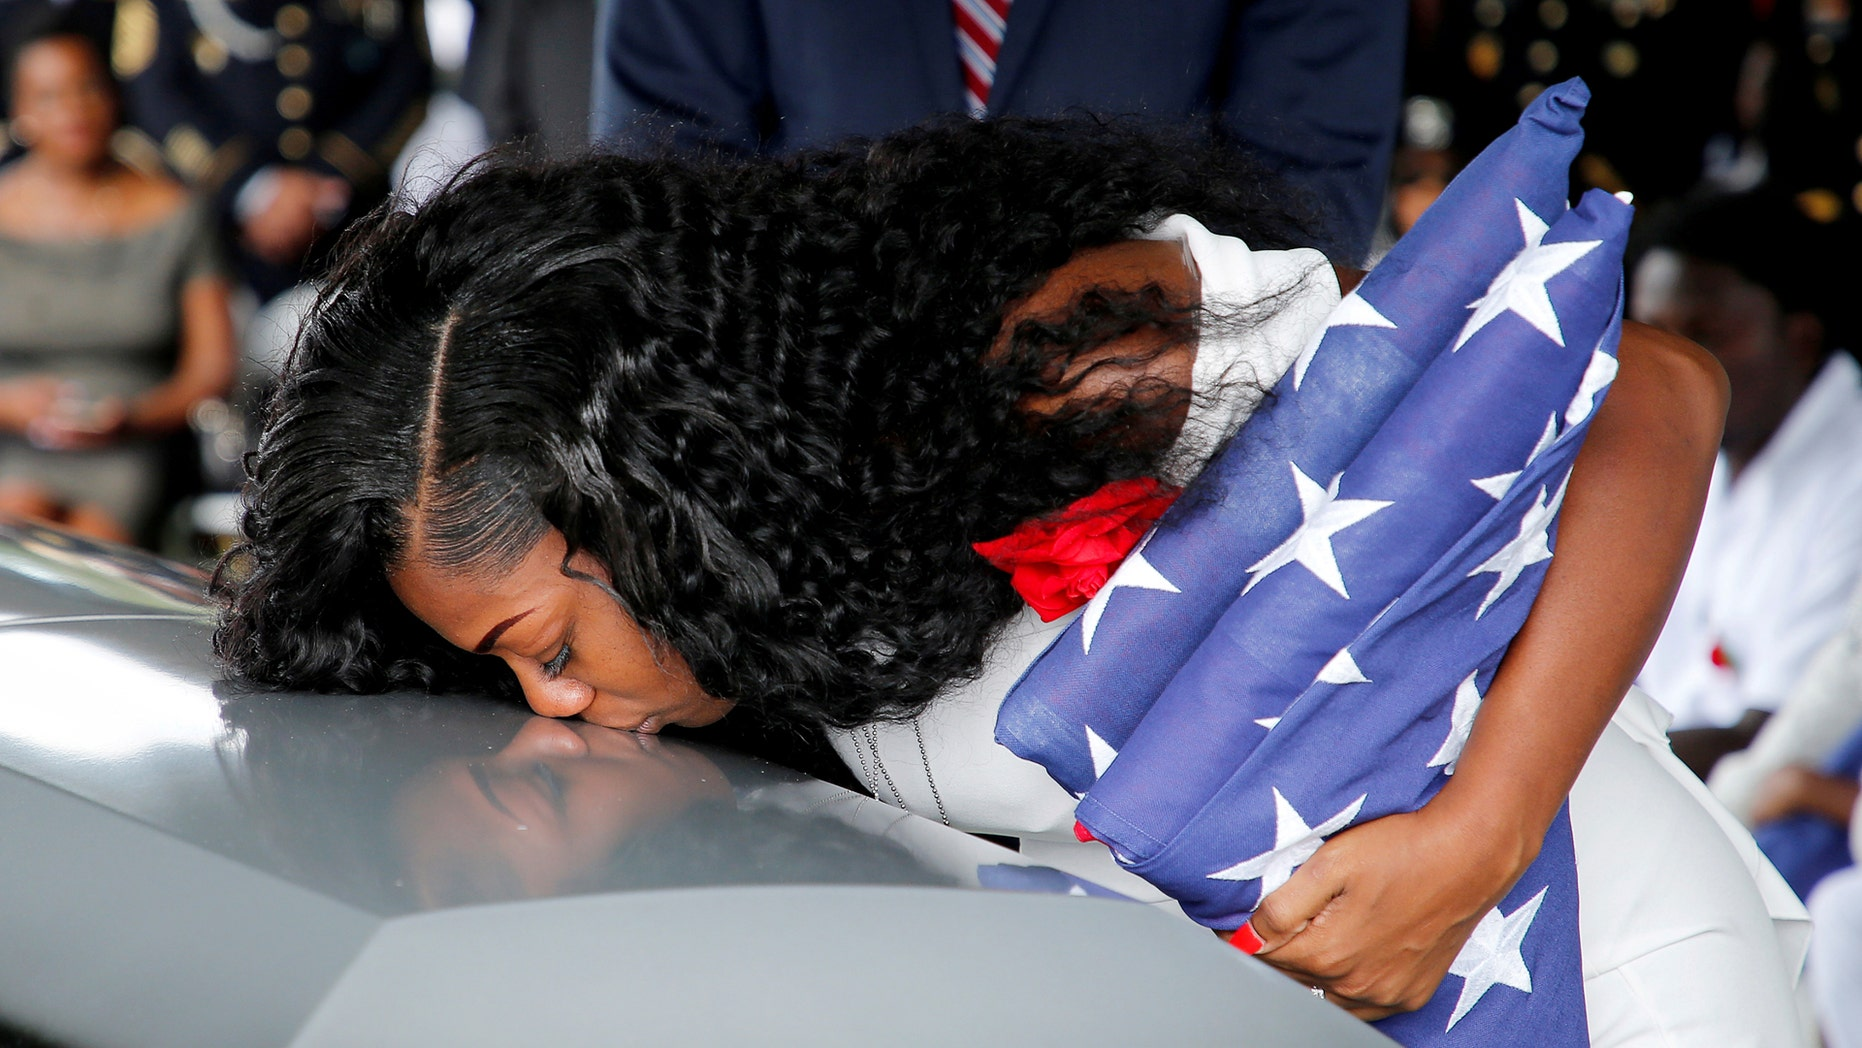 Myeshia Johnson, wife of U.S. Army Sergeant La David Johnson, who was among four special forces soldiers killed in Niger, kisses his coffin at a graveside service in Hollywood, Florida, October 21, 2017. (REUTERS/Joe Skipper)